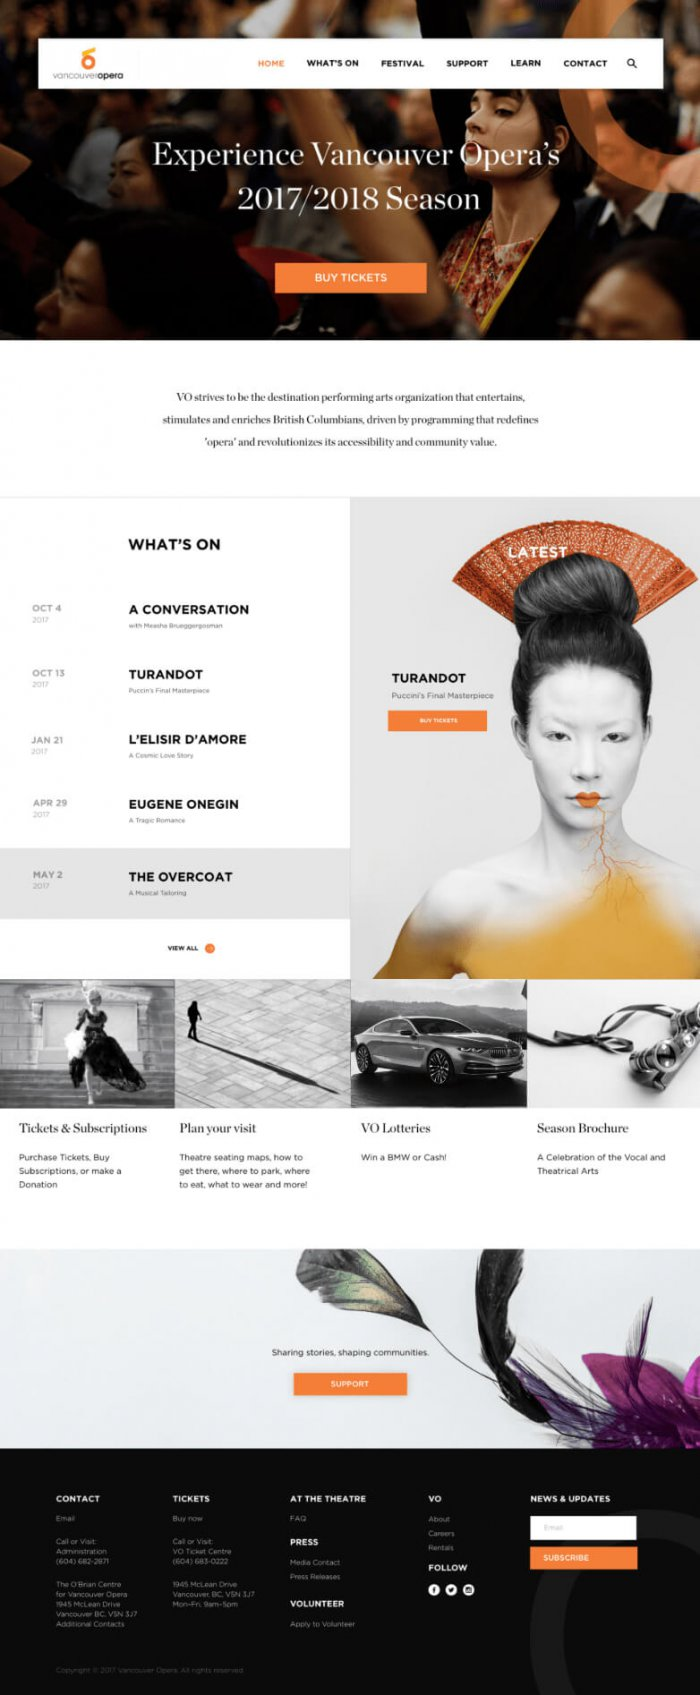 Vancouver Opera homepage design